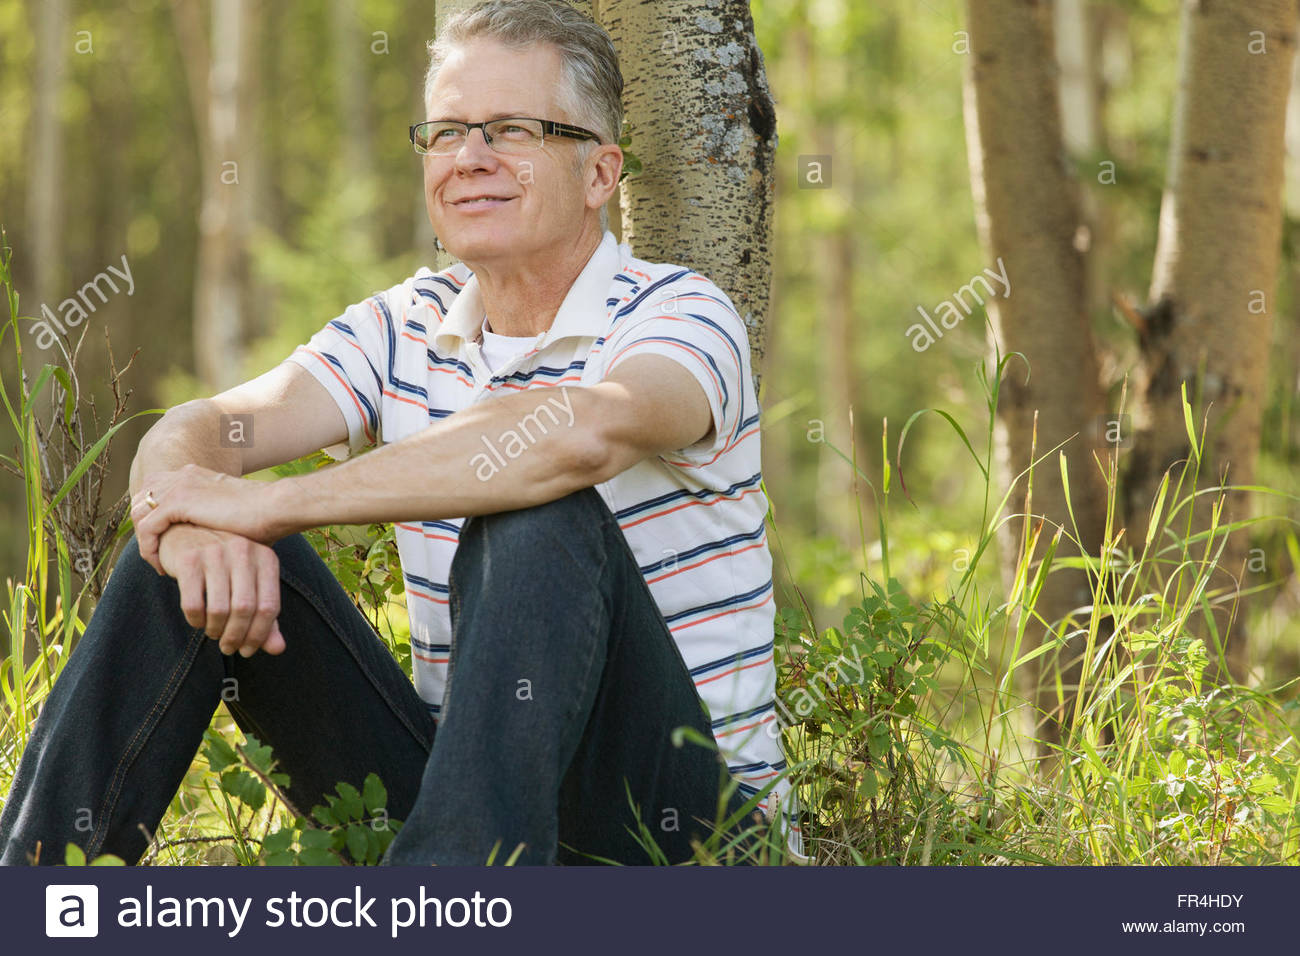 middle-aged man day-dreaming as he relaxes by trees - Stock Image